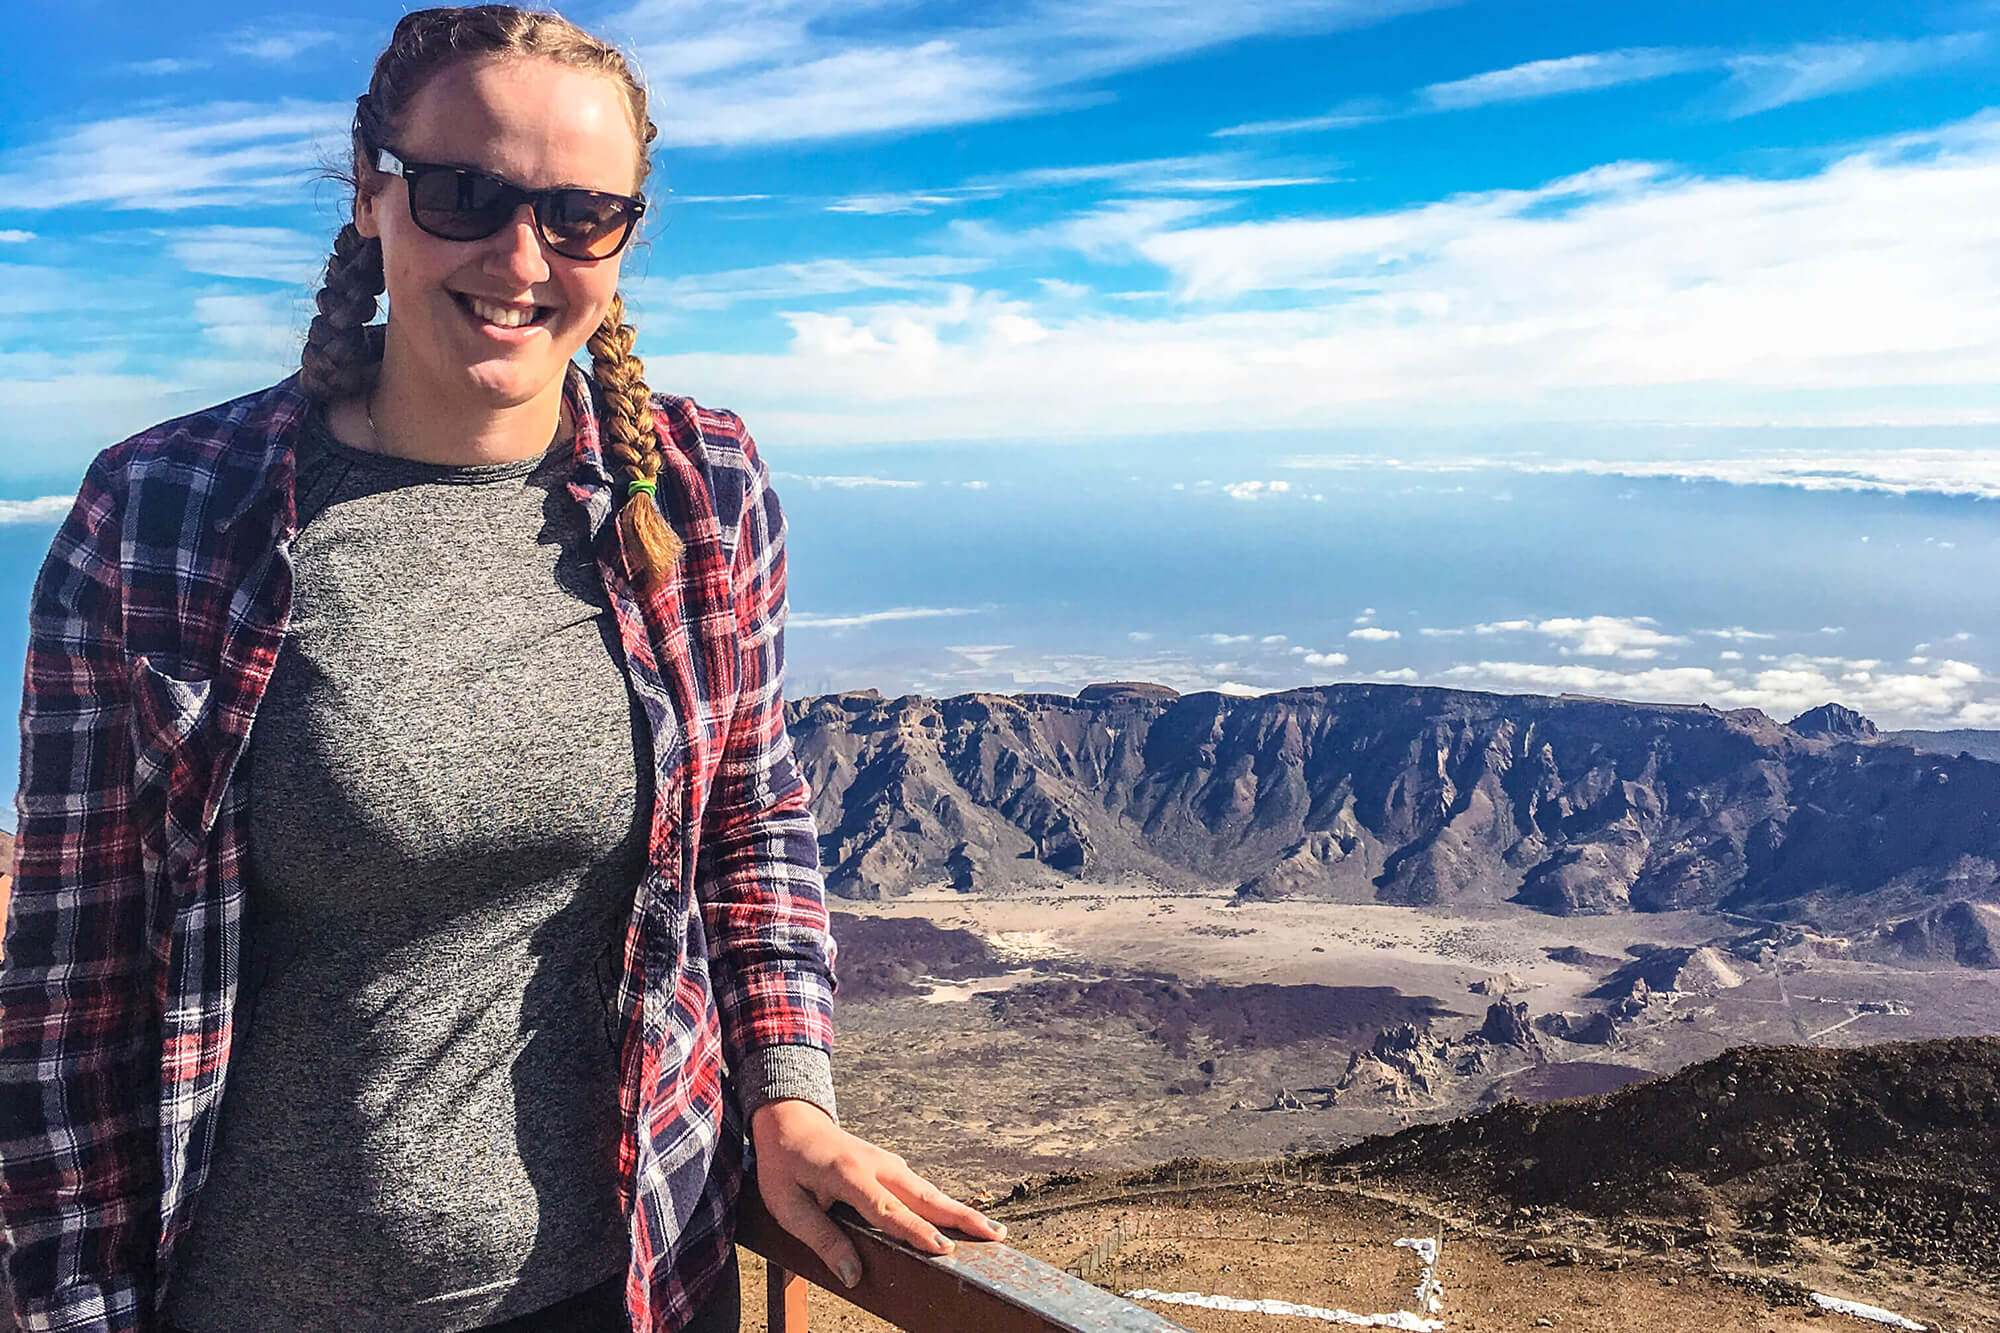 Rebecca Winstanley studying volcanoes in Tenerife